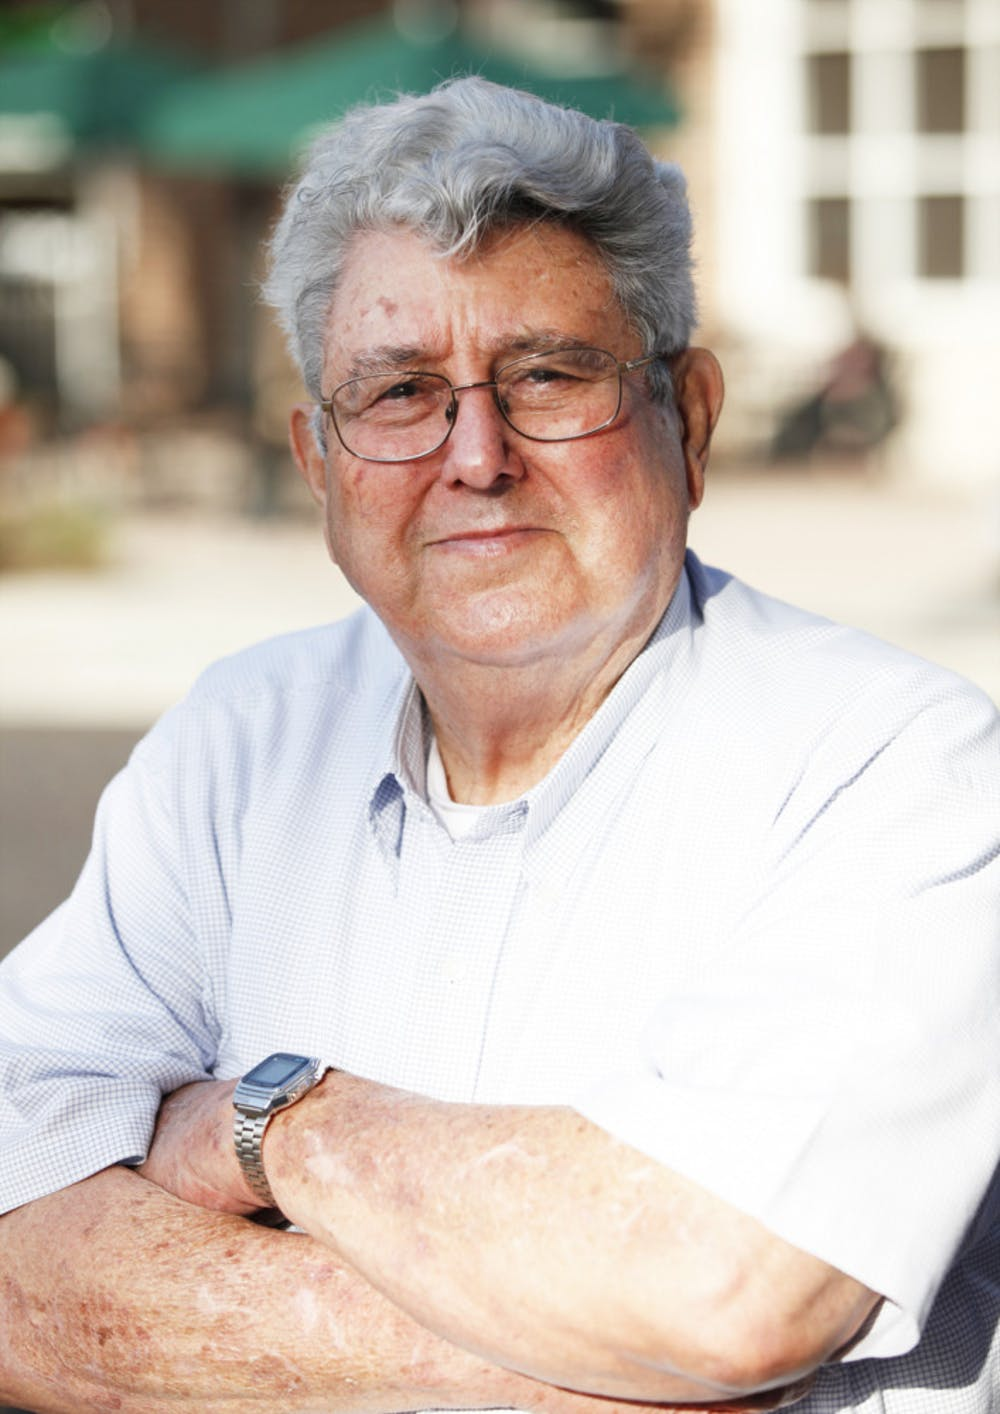 """<p>W.E. """"Mac"""" McEachern, 81, stands on the corner of Southeast Second Place and Southeast First Street on Feb. 12. McEachern is running for District 4 city commissioner.</p>"""